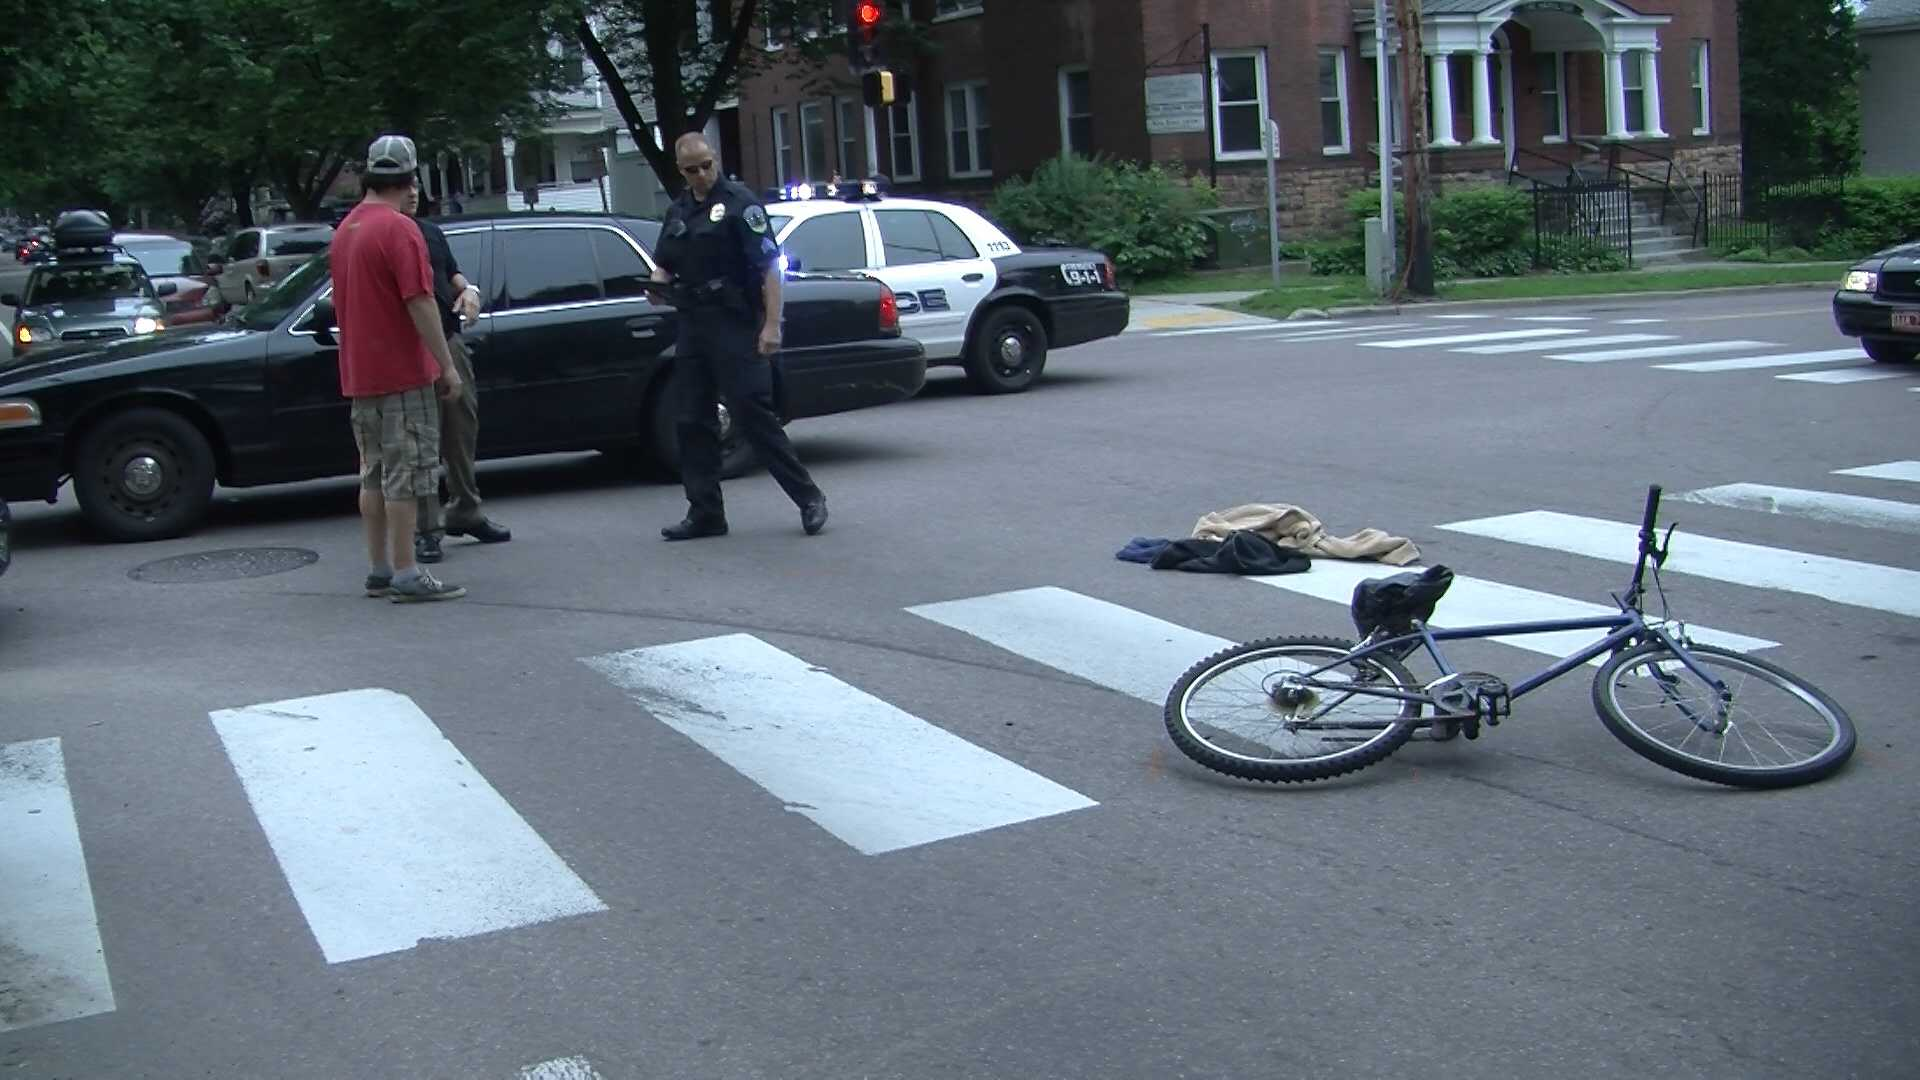 06-13-13 Bicyclist hurt in Vt. collision - img